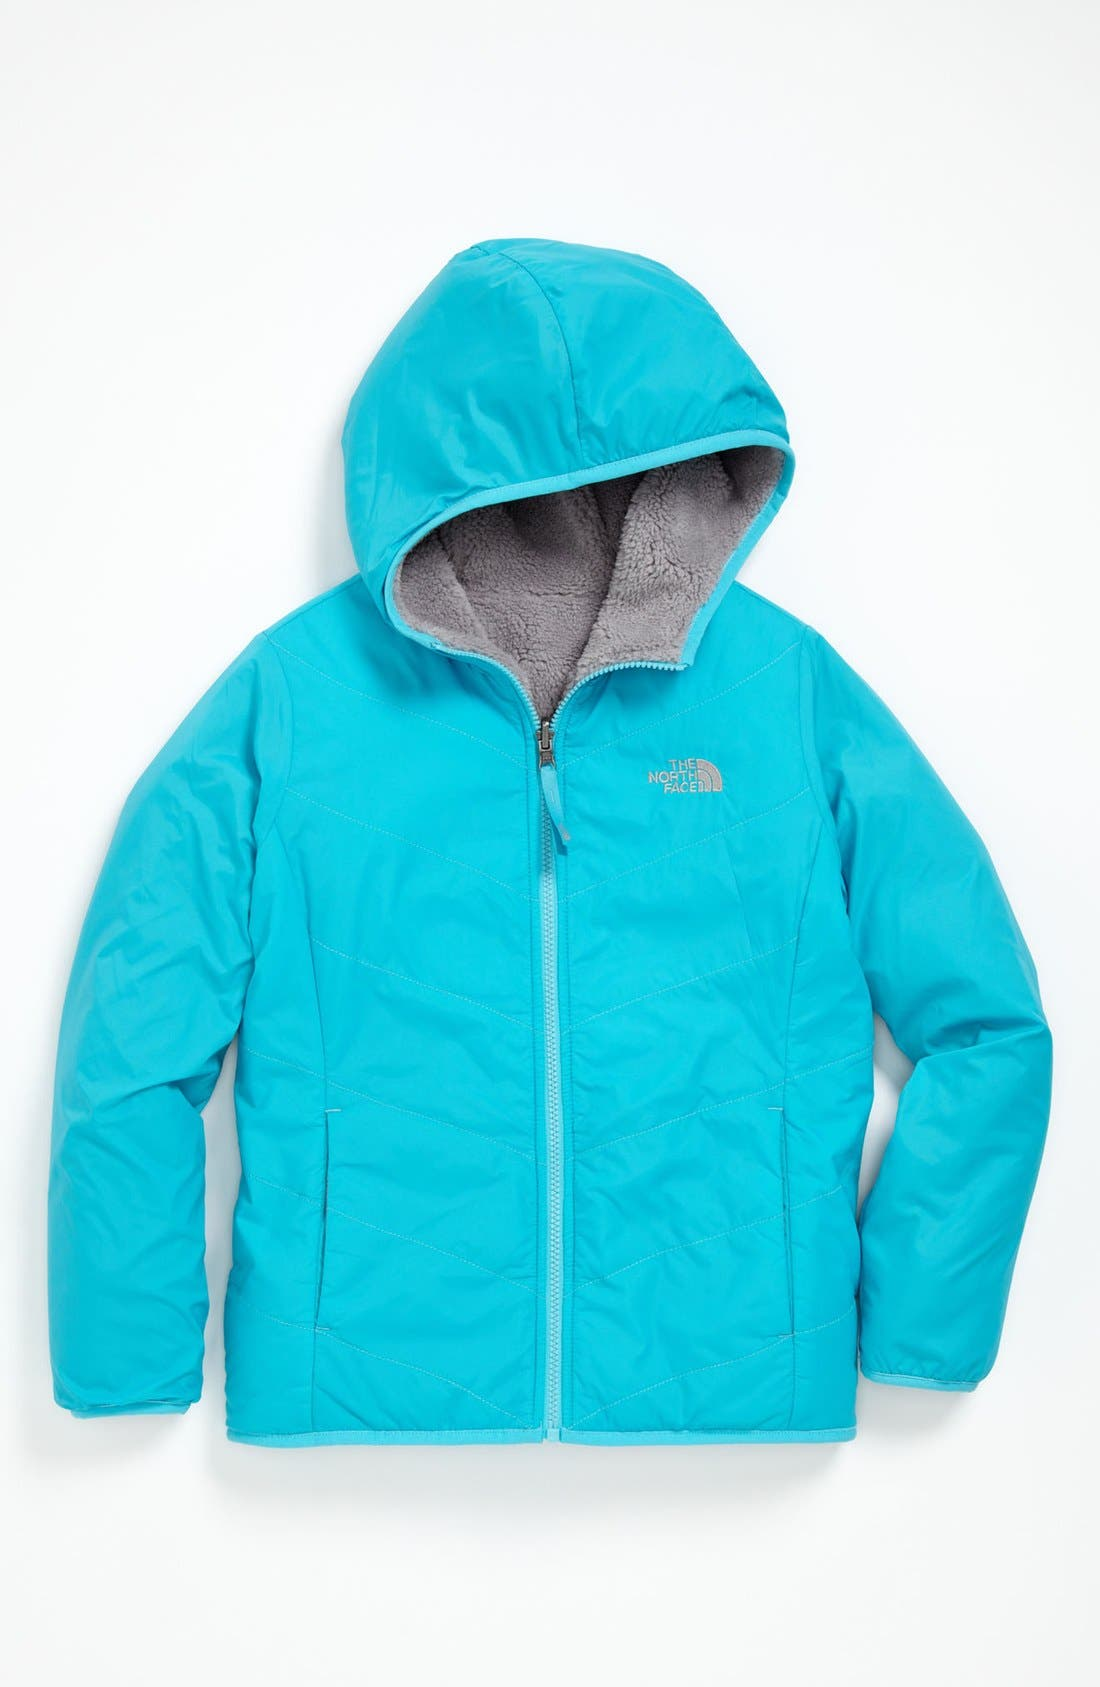 Alternate Image 1 Selected - The North Face 'Perseus' Reversible Jacket (Little Girls & Big Girls)